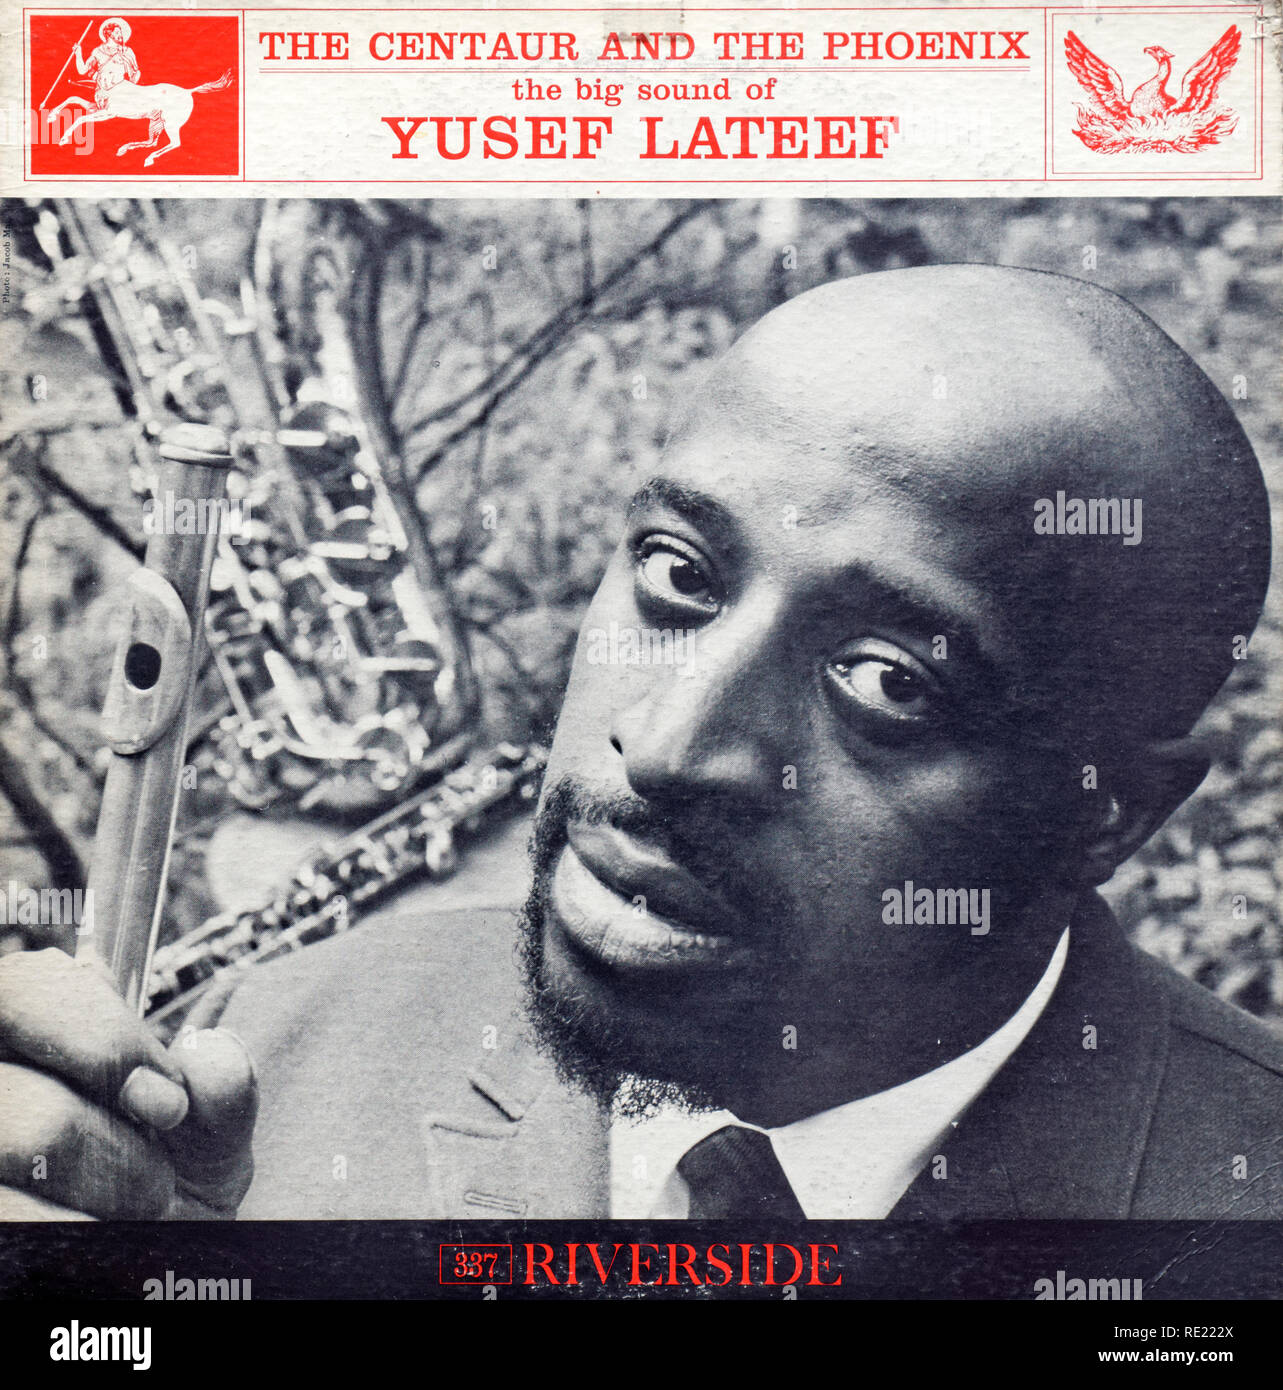 yusef-lateef-the-centaur-and-the-phoenix